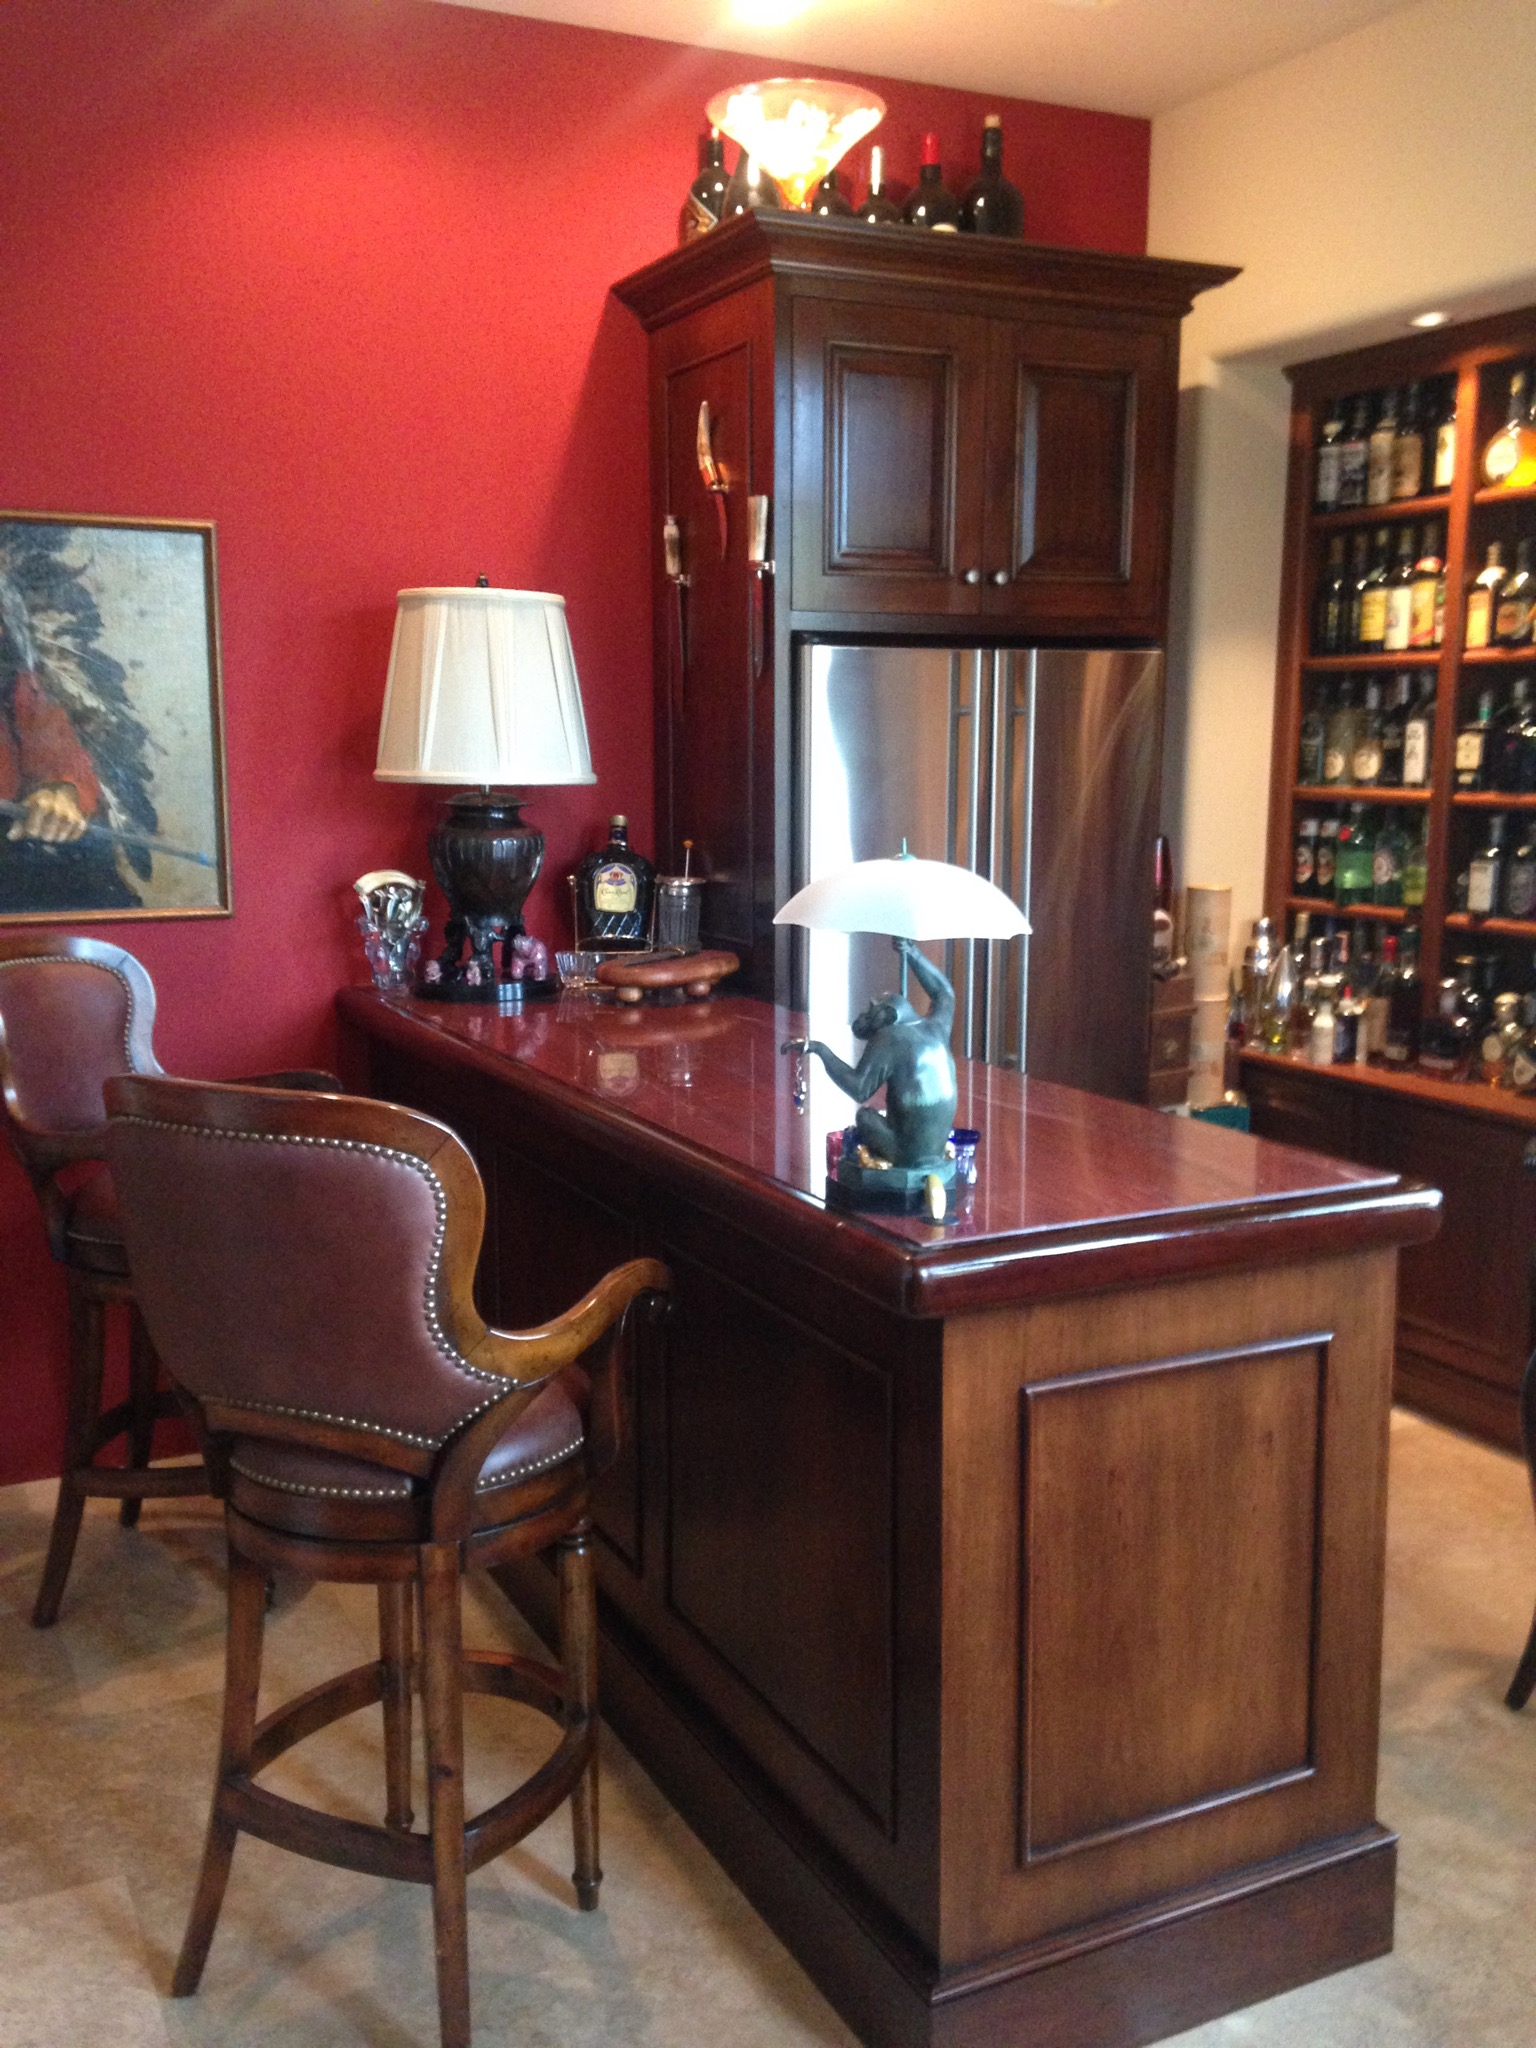 Man Cave, man cave bar, custom bar, residential bar, old style bar, rich woodwork,